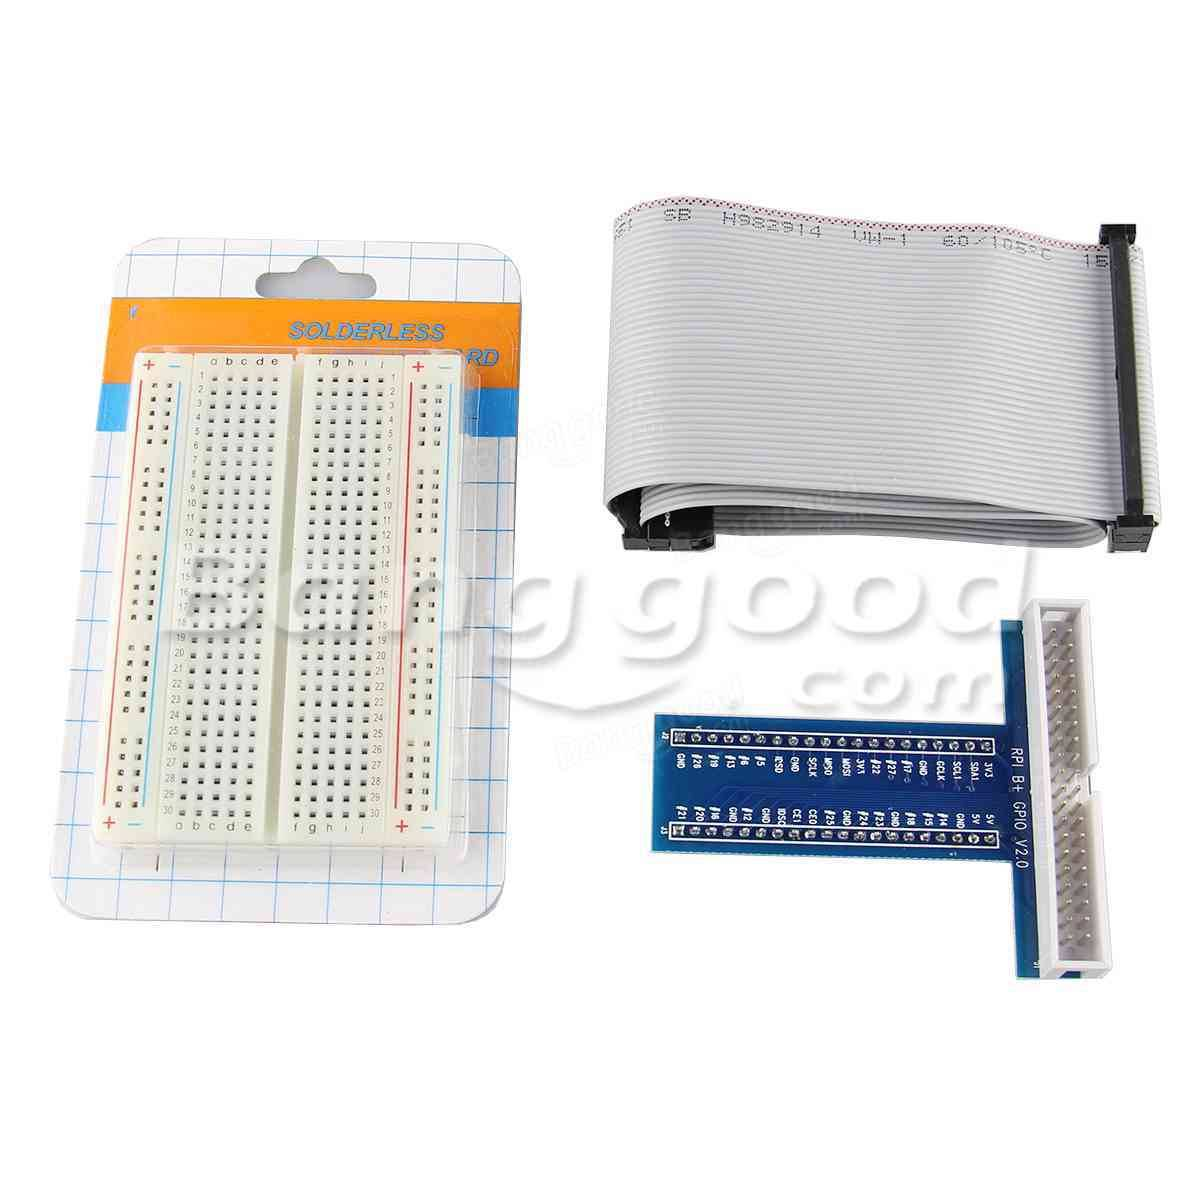 Solderless 400 Point Breadboard + 40Pin Cable + 40Pin GPIO For Raspberry Pi 2 Mode B/B+